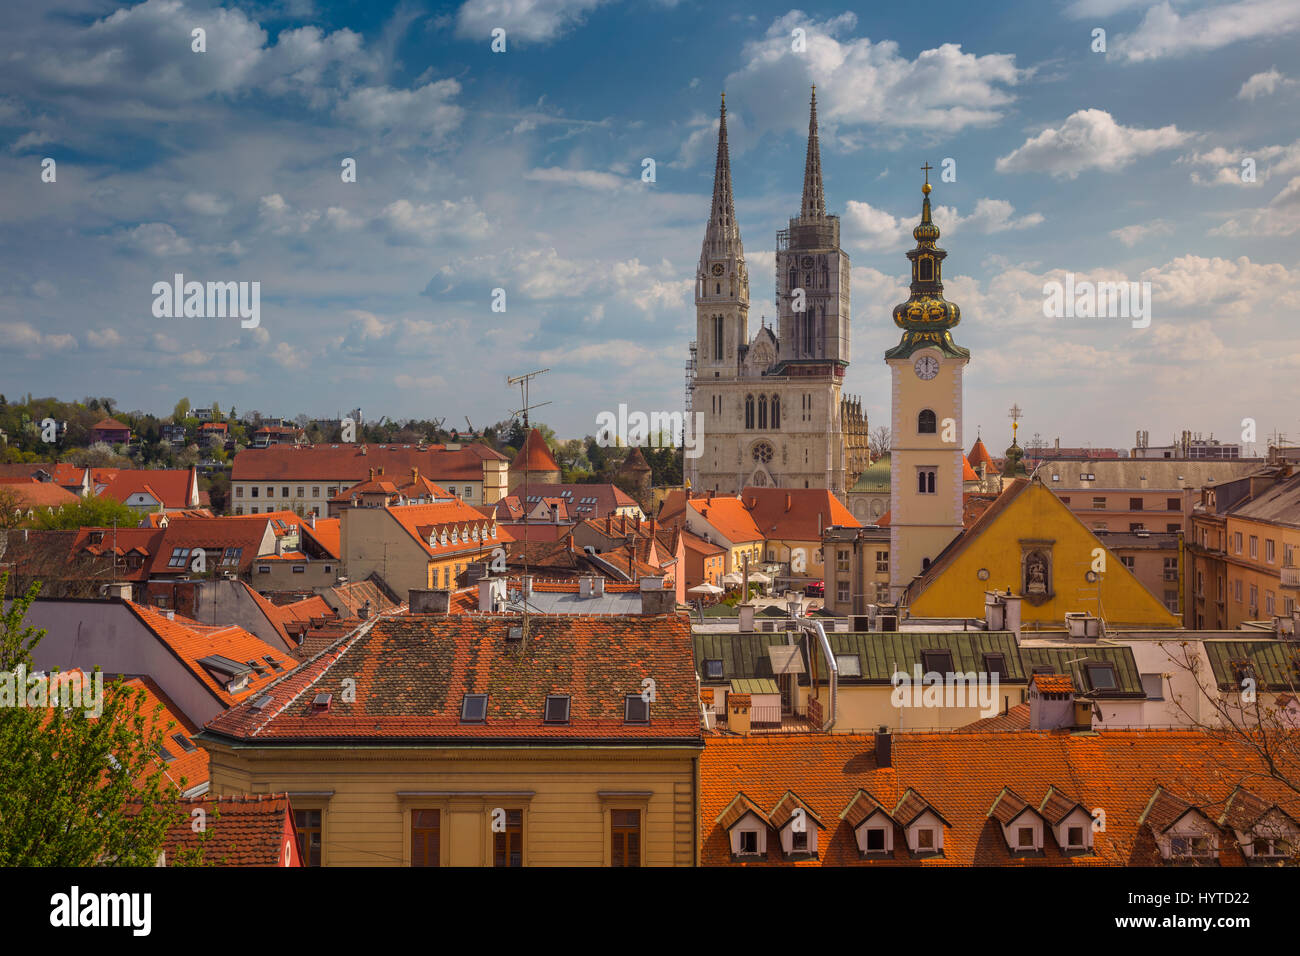 Zagreb. Cityscape image of Zagreb, Croatia during sunny spring day. - Stock Image